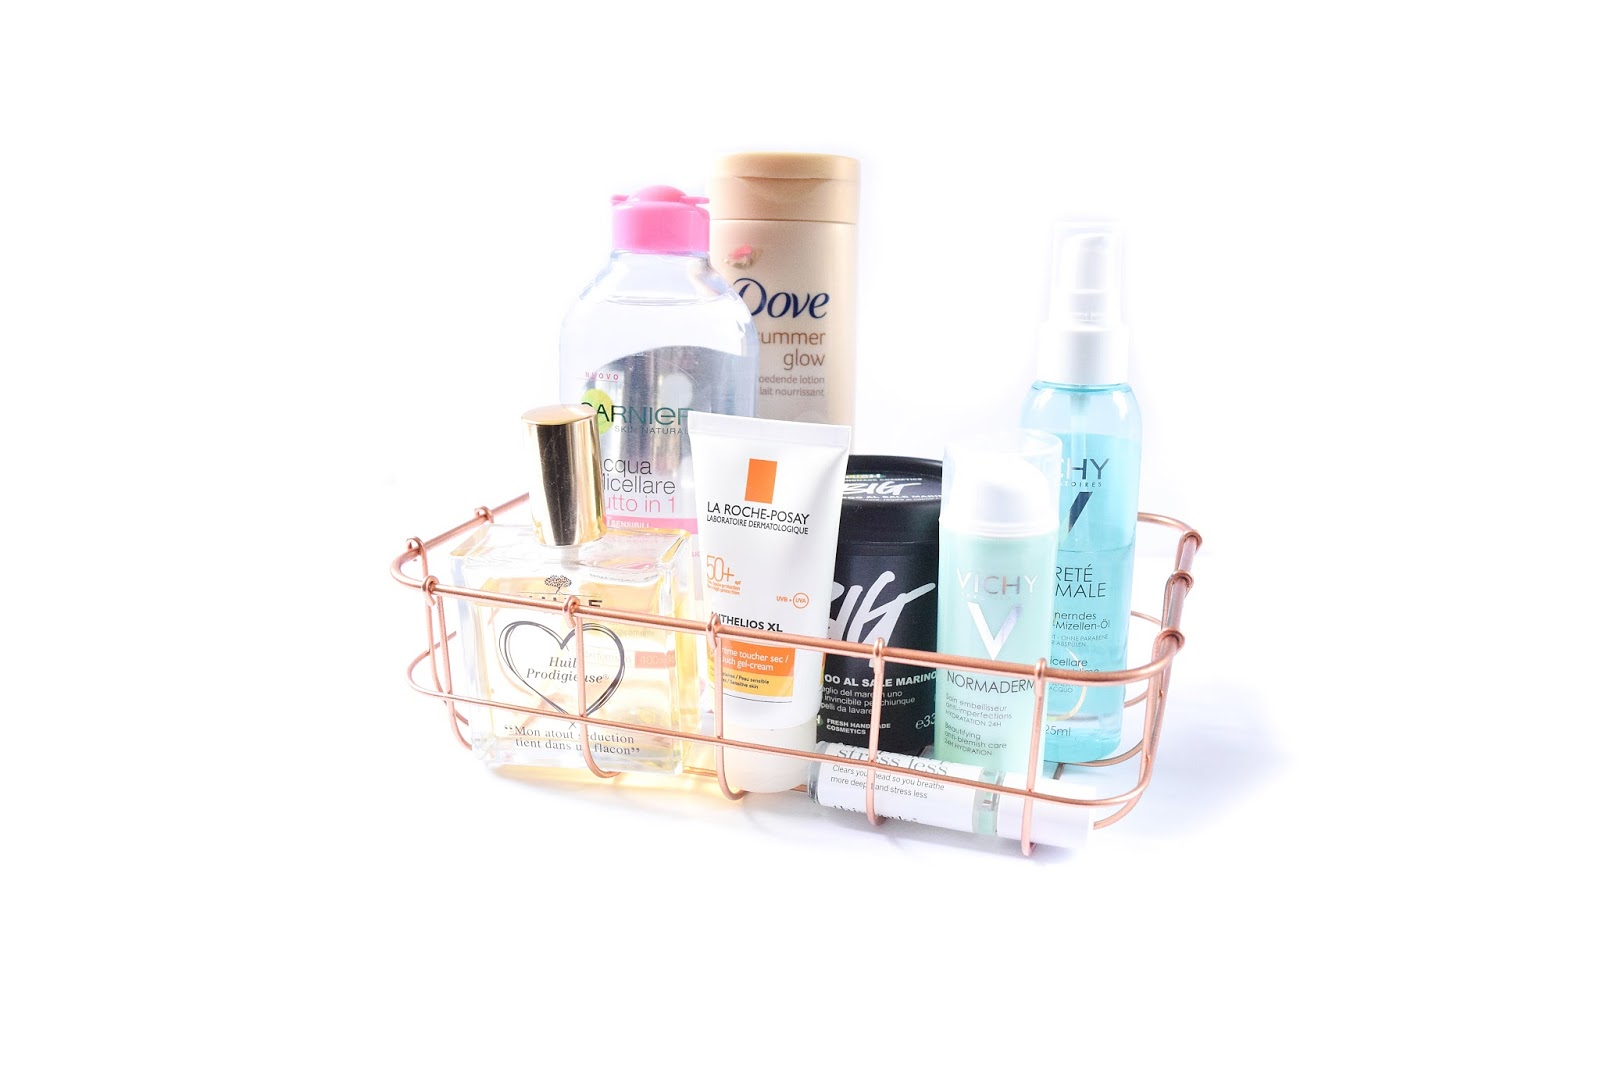 2015 beauty favourites, skincare 2015 favorites